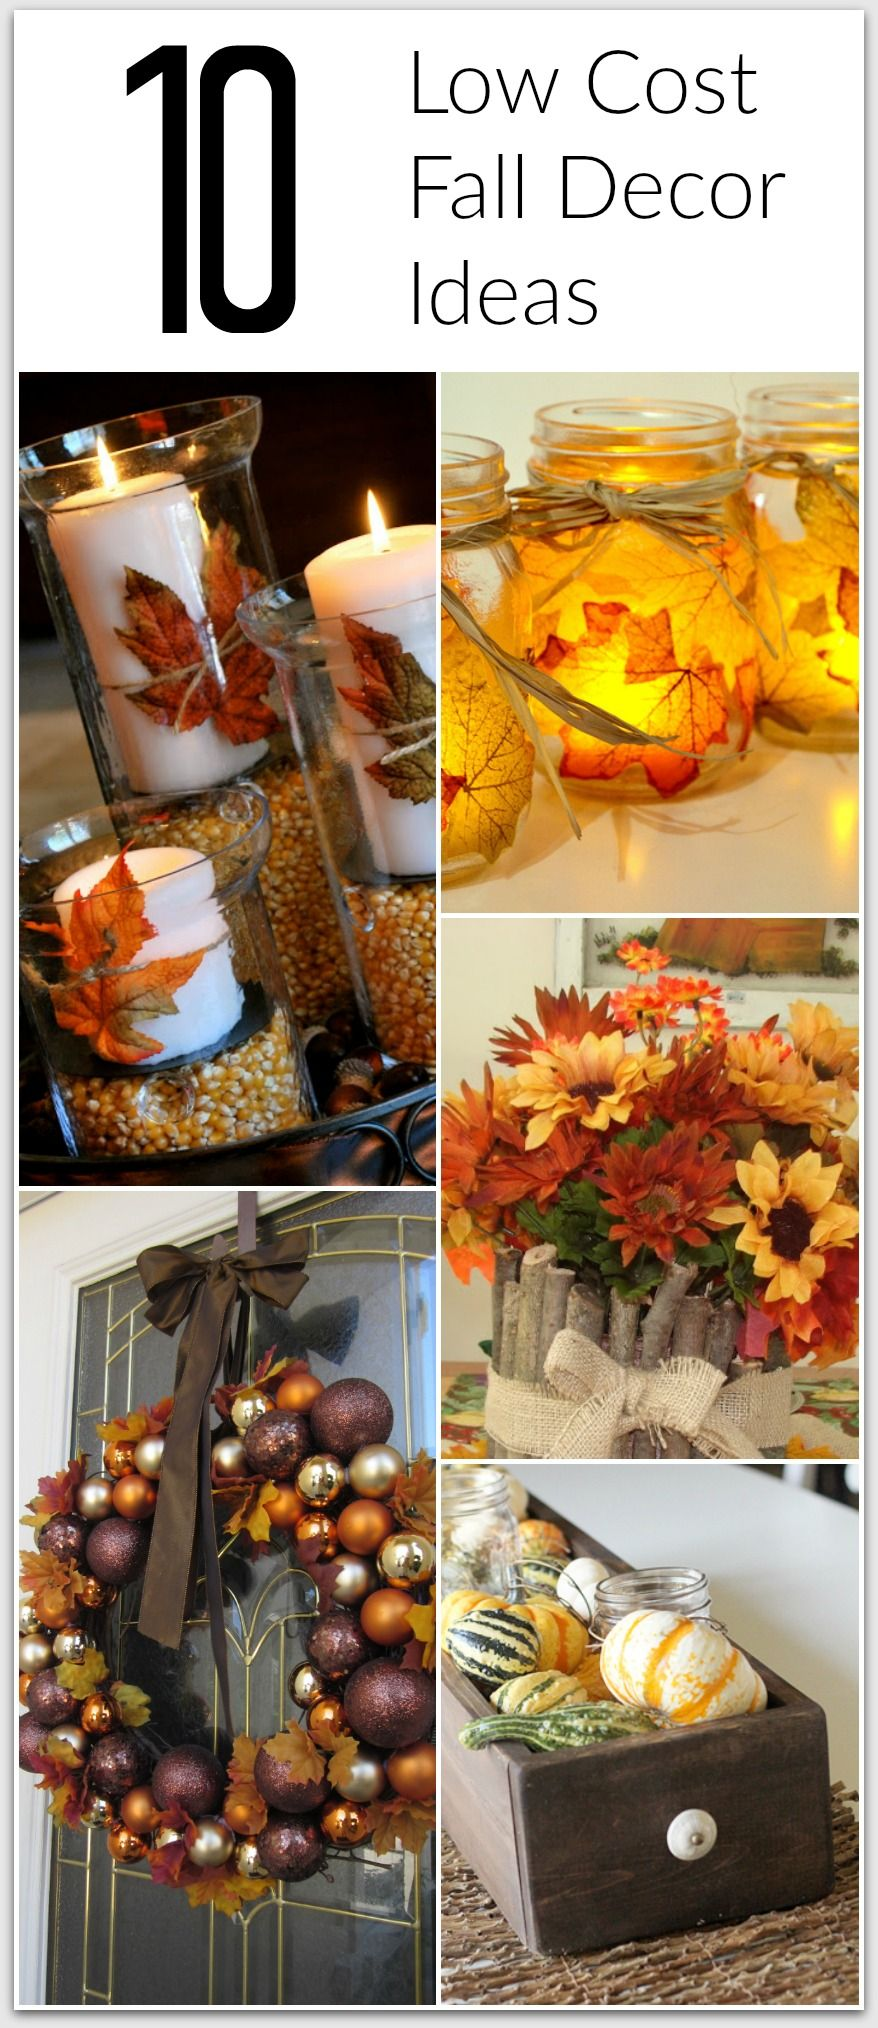 10 Great Fall Decor Ideas that are